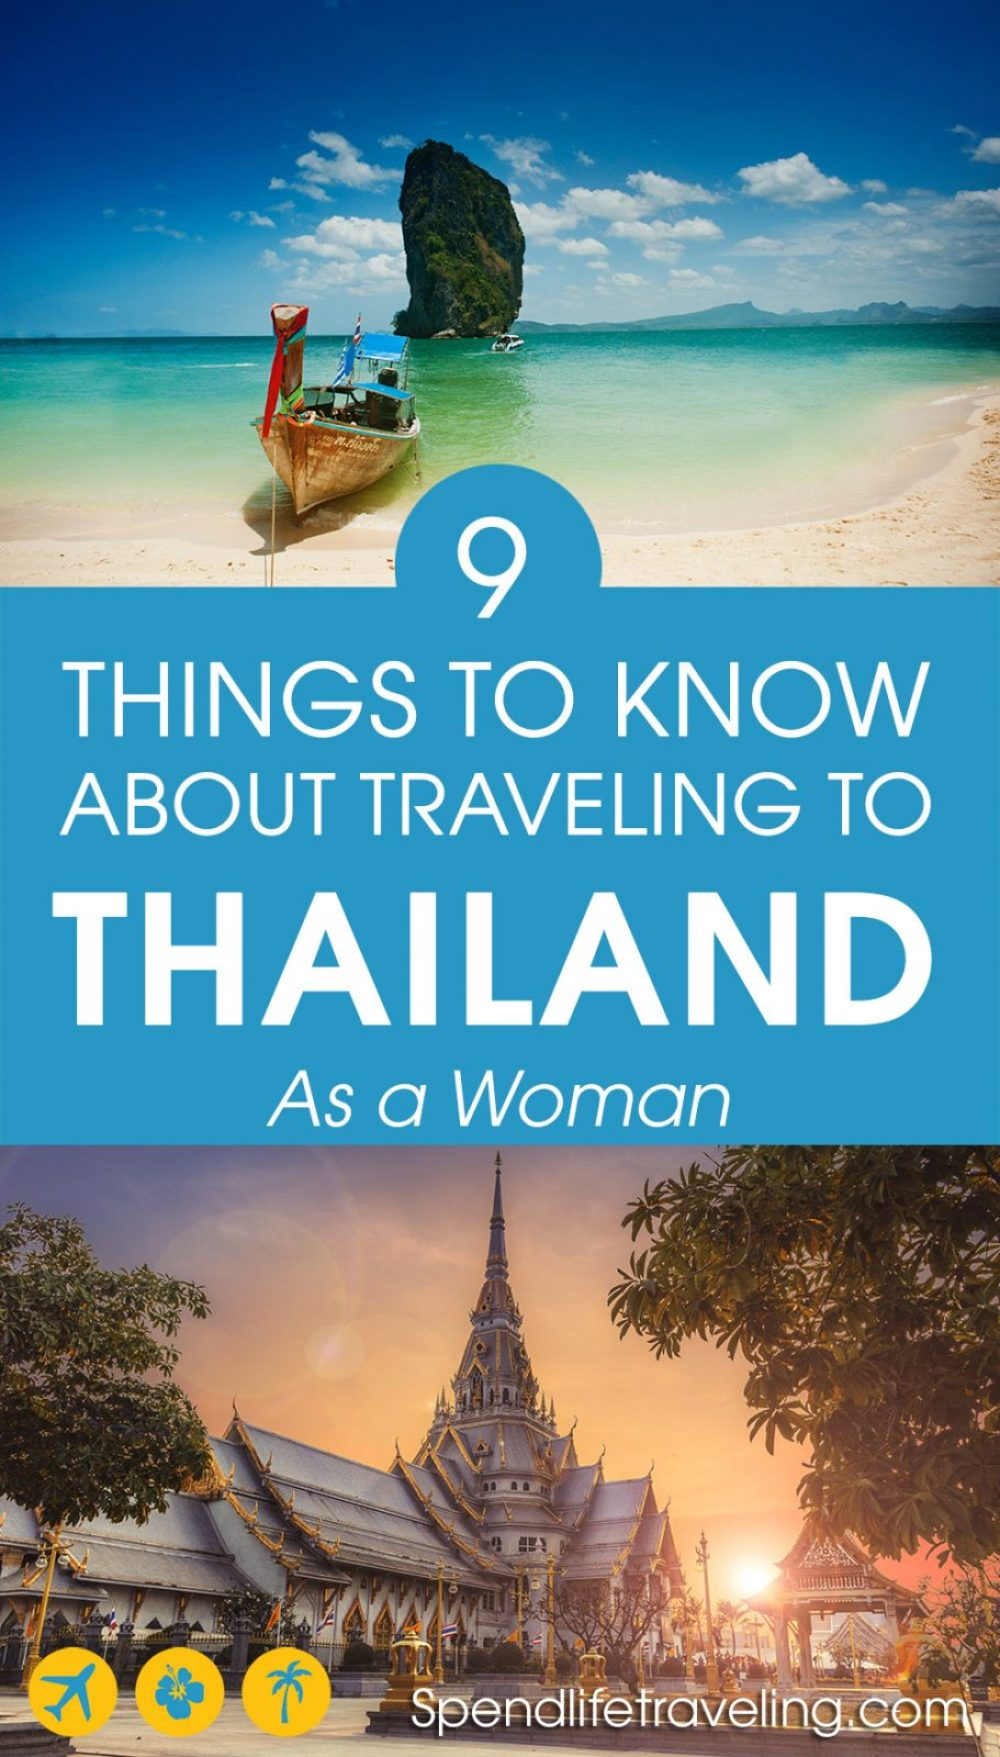 Is #Thailand a safe country to visit for both men and women? Yes, it is. But check out these useful things to know about traveling in Thailand. Some tips specifically for female travelers, some general tips for traveling in Thailand. #travelsafety #travelAsia #travelThailand